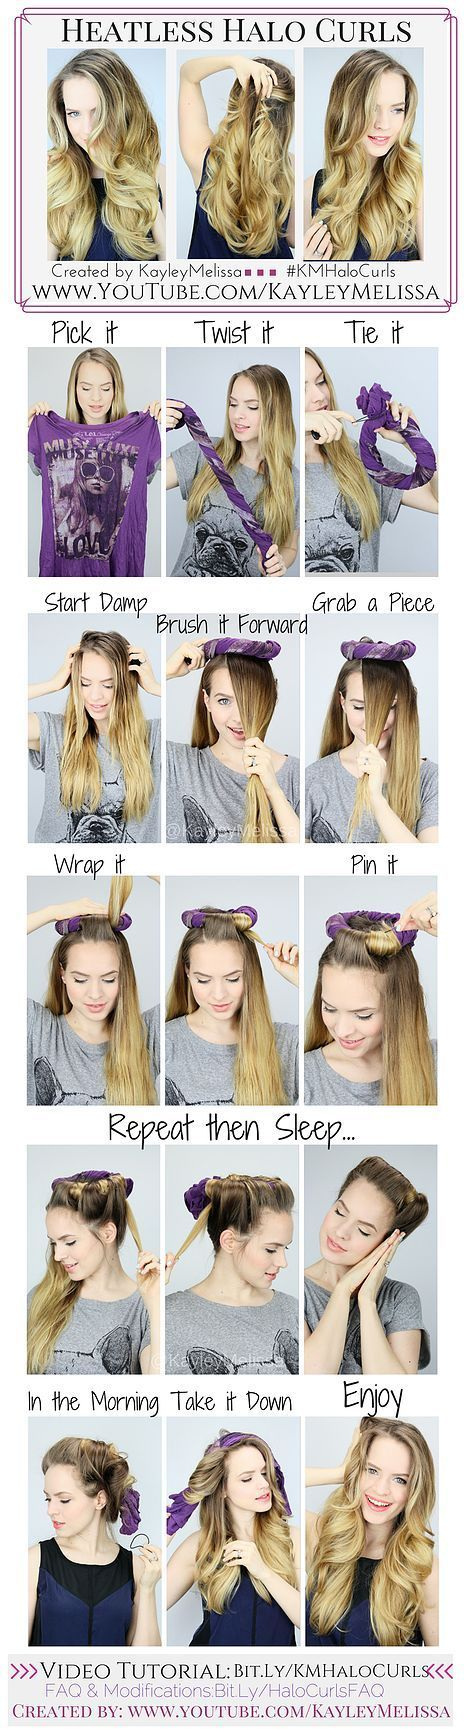 Heatless halo curls hair tutorial pictures photos and images for